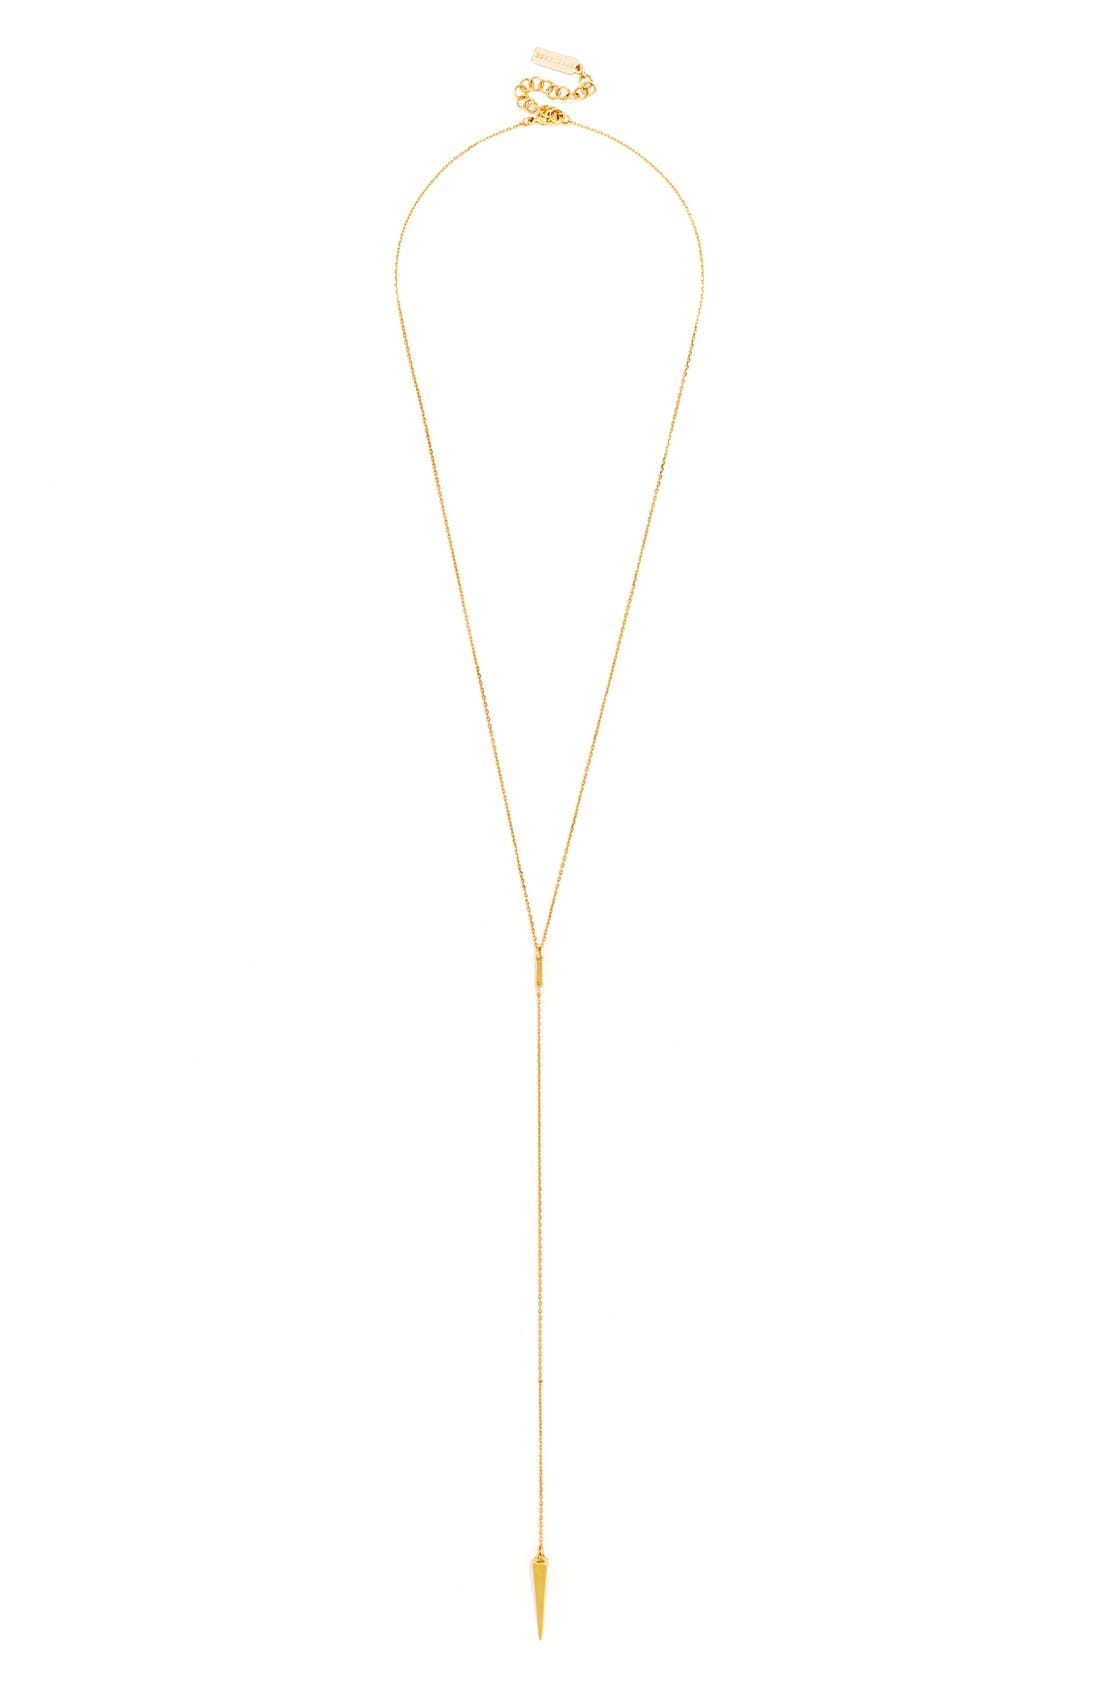 'Pyramid' Layered Necklace Gift Set,                             Alternate thumbnail 2, color,                             Gold